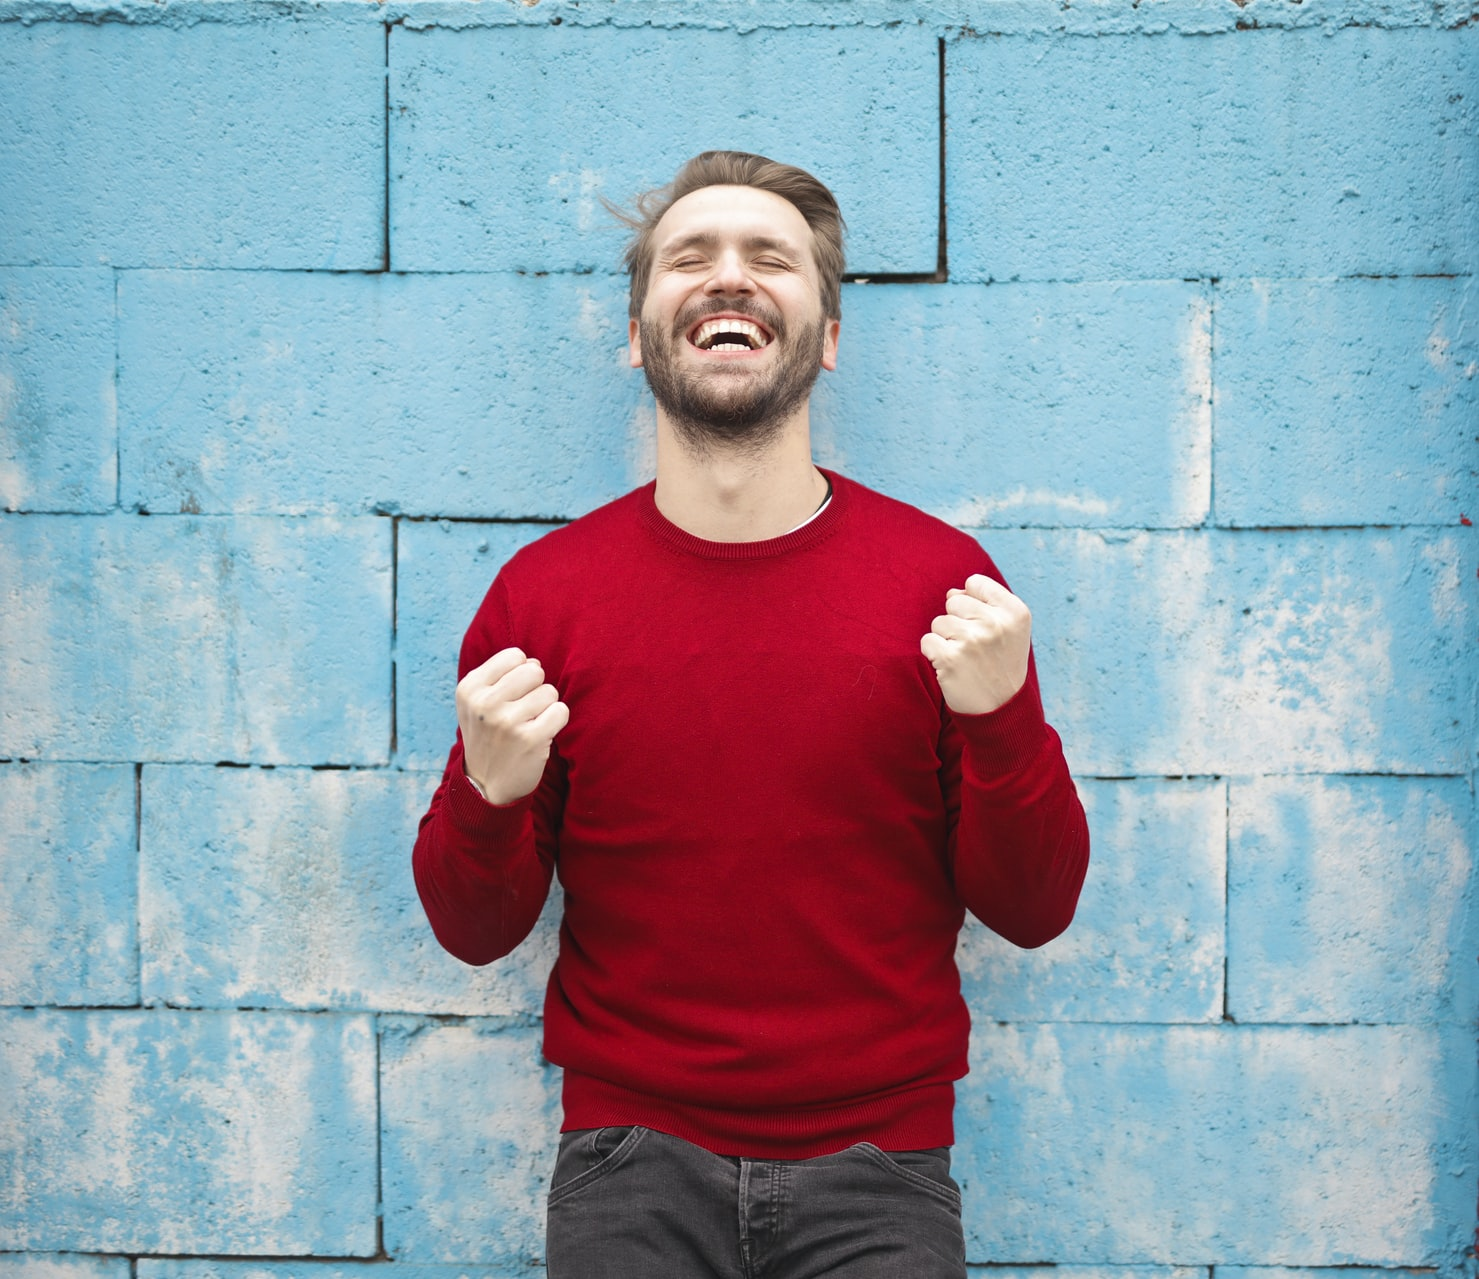 Man celebrating a victory in front of a blue wall